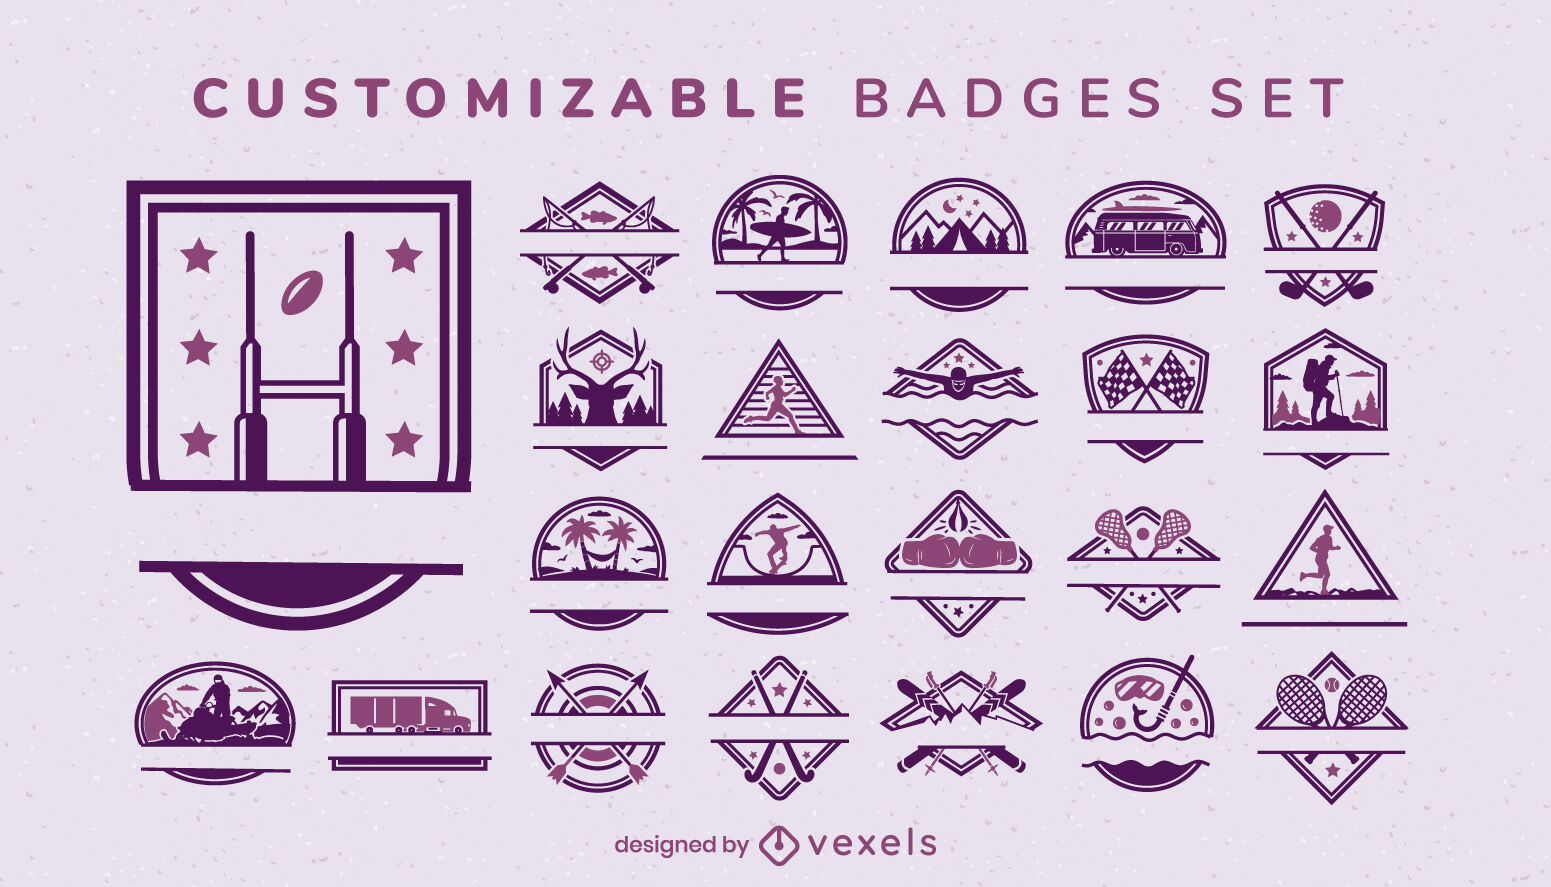 Customizable activities and sports badges set